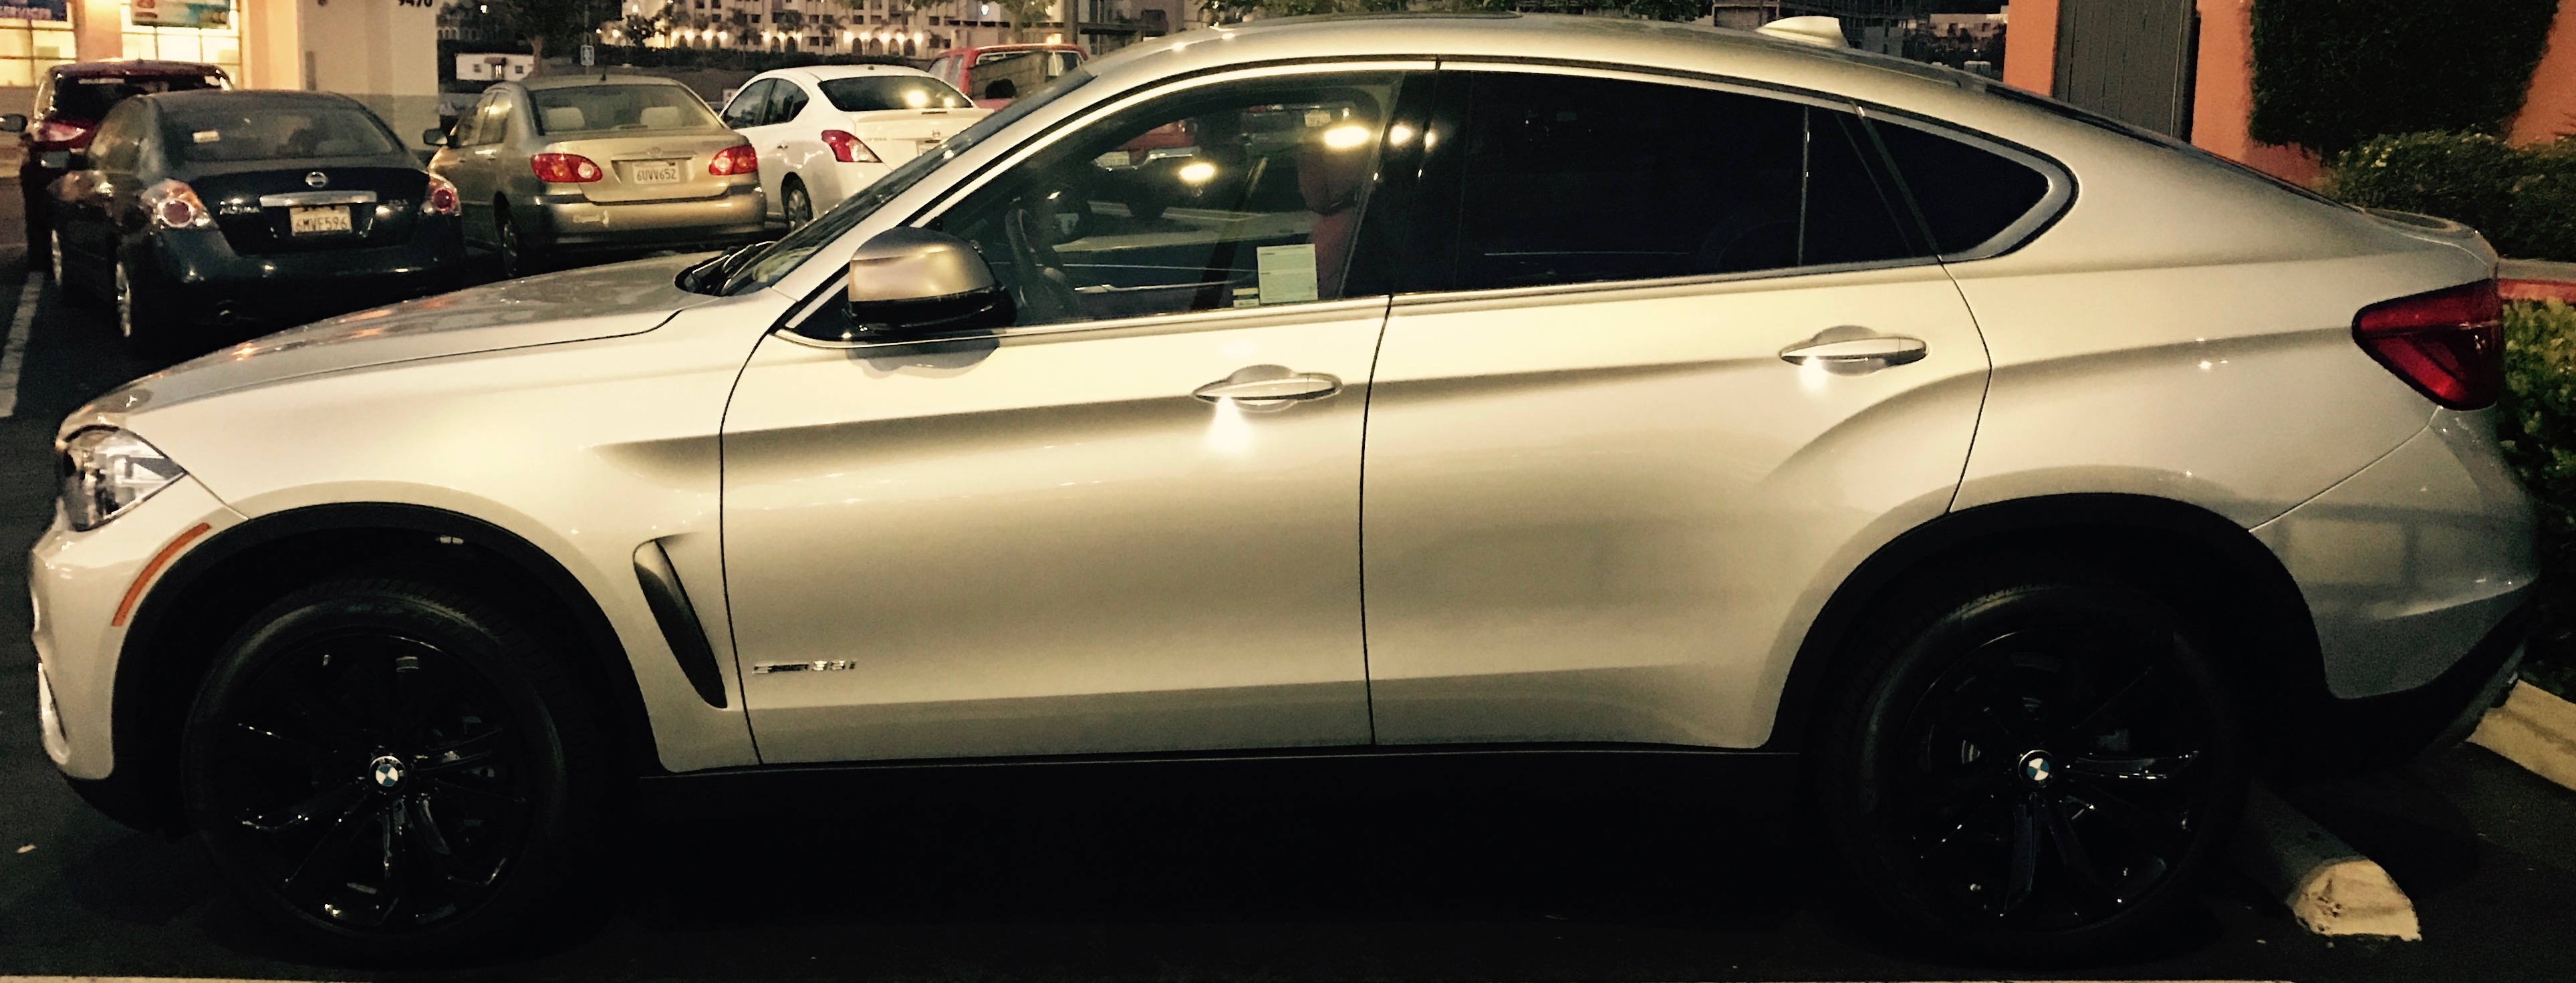 Take Over Lease >> 2017 Bmw X6 Sdrive Lease Take Over Marketplace Leasehackr Forum